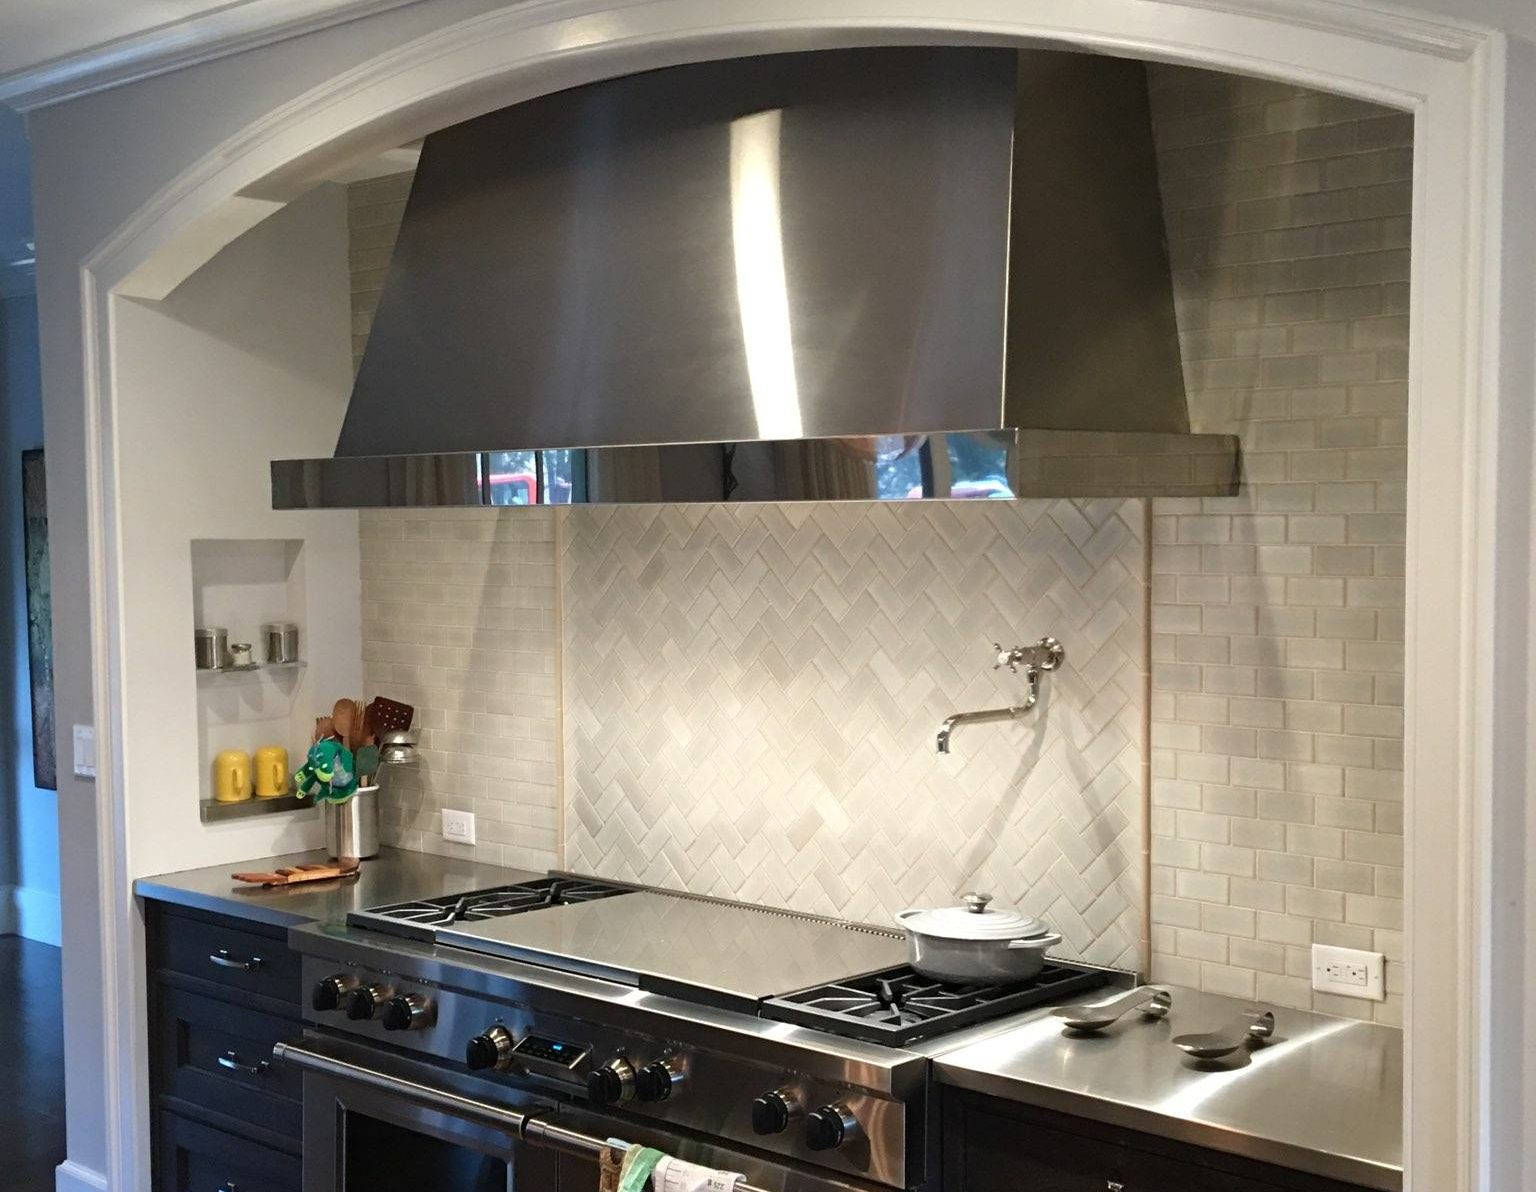 Wall mounted Chalet in stainless steel brushed with polished stainless steel trim.